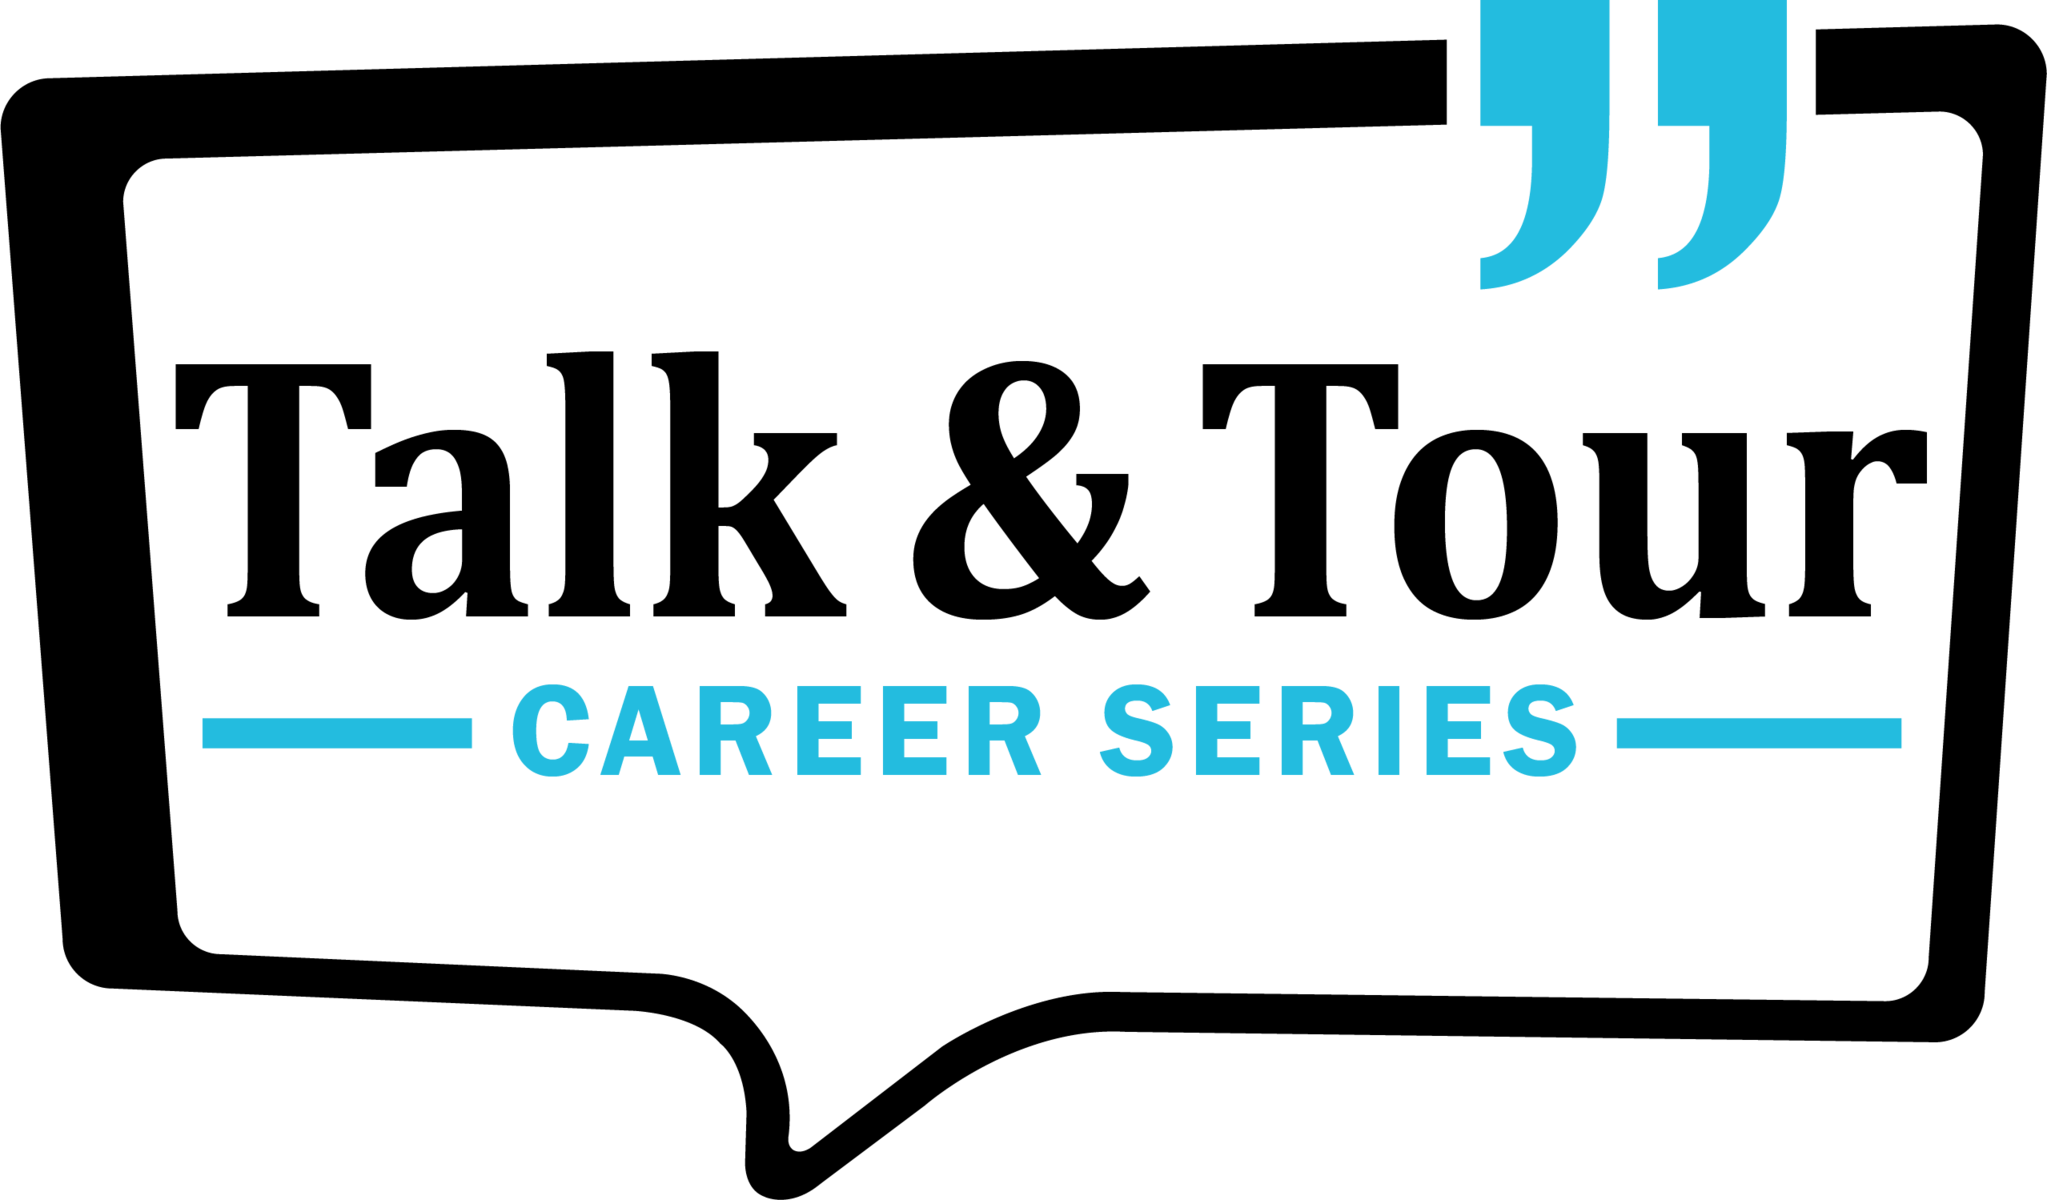 Talk and Tour Career Series graphic